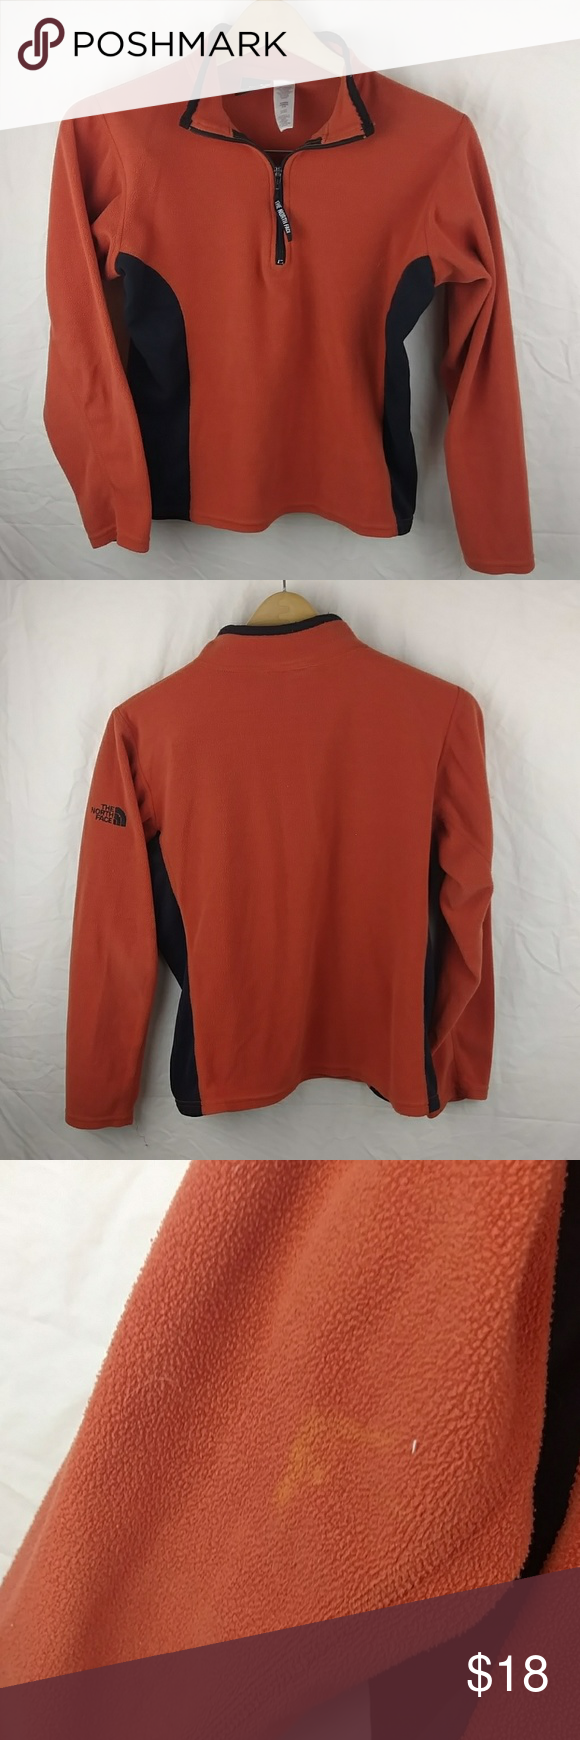 the north face pull over jacket the north face orange and. Black Bedroom Furniture Sets. Home Design Ideas